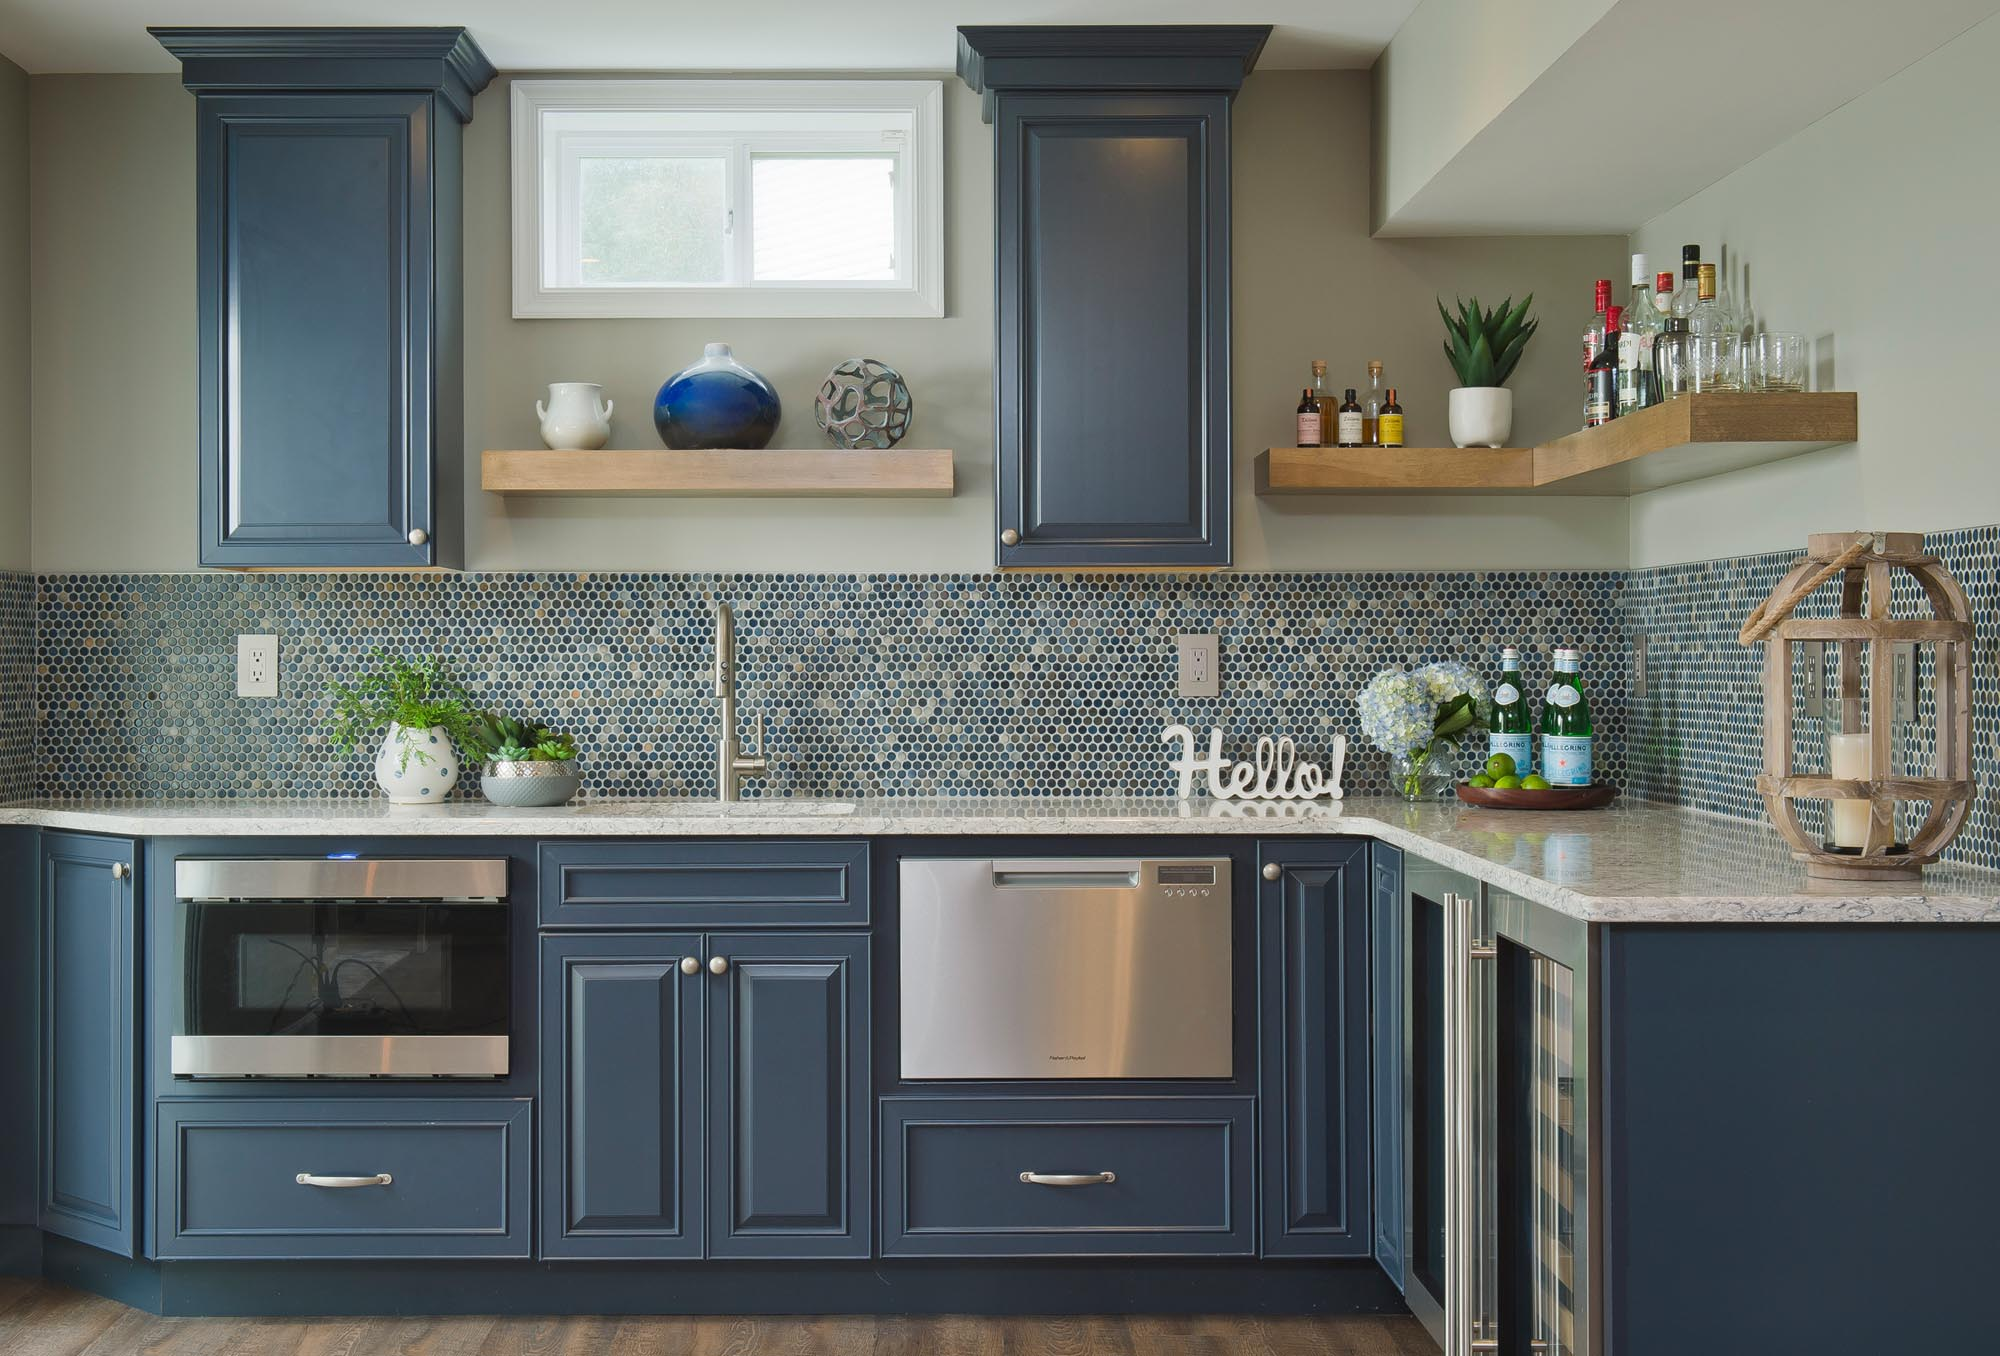 Kitchen area with blue tile and L shaped counter top